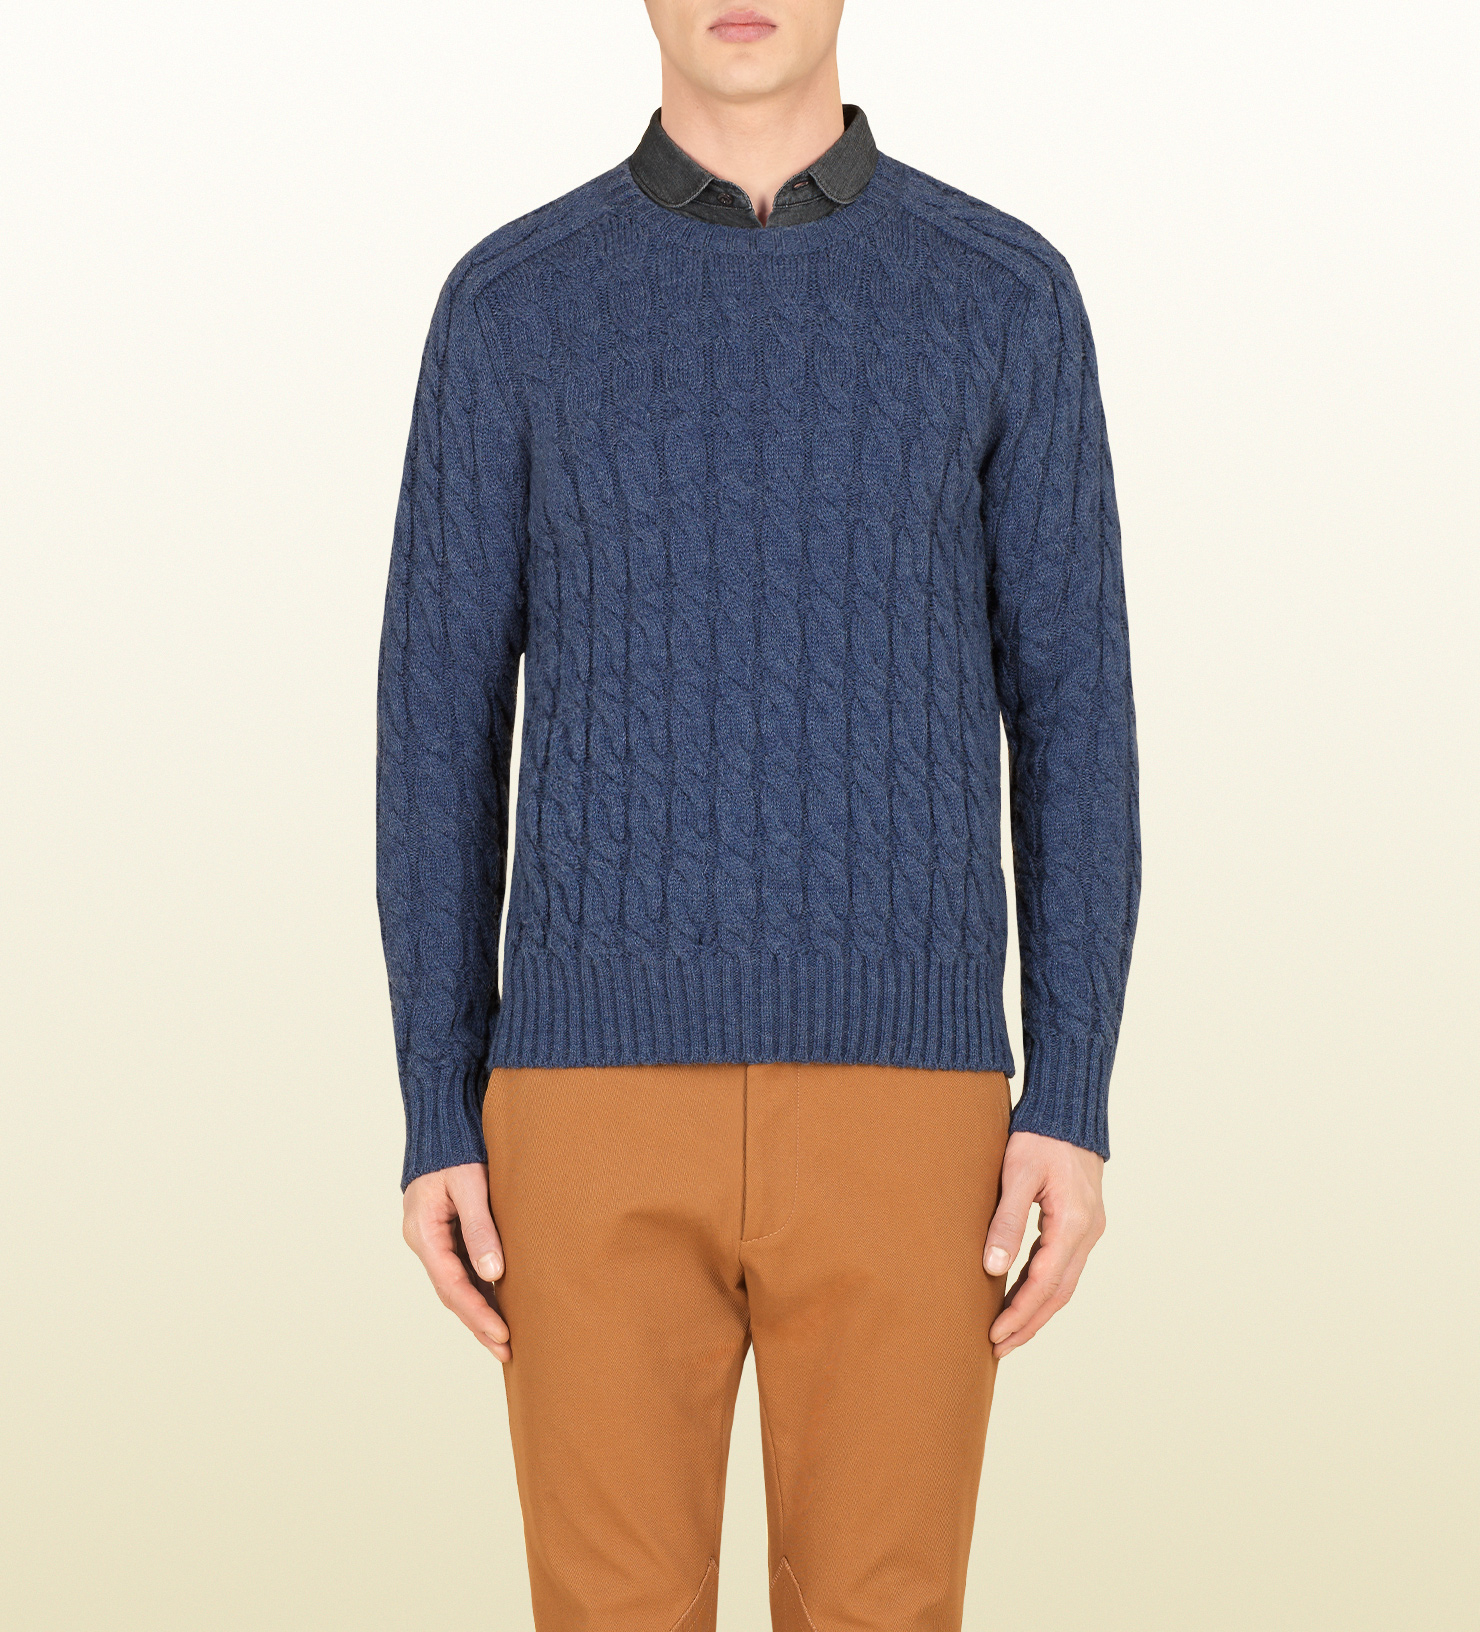 Gucci Light Blue Cable Knit Sweater in Blue for Men | Lyst